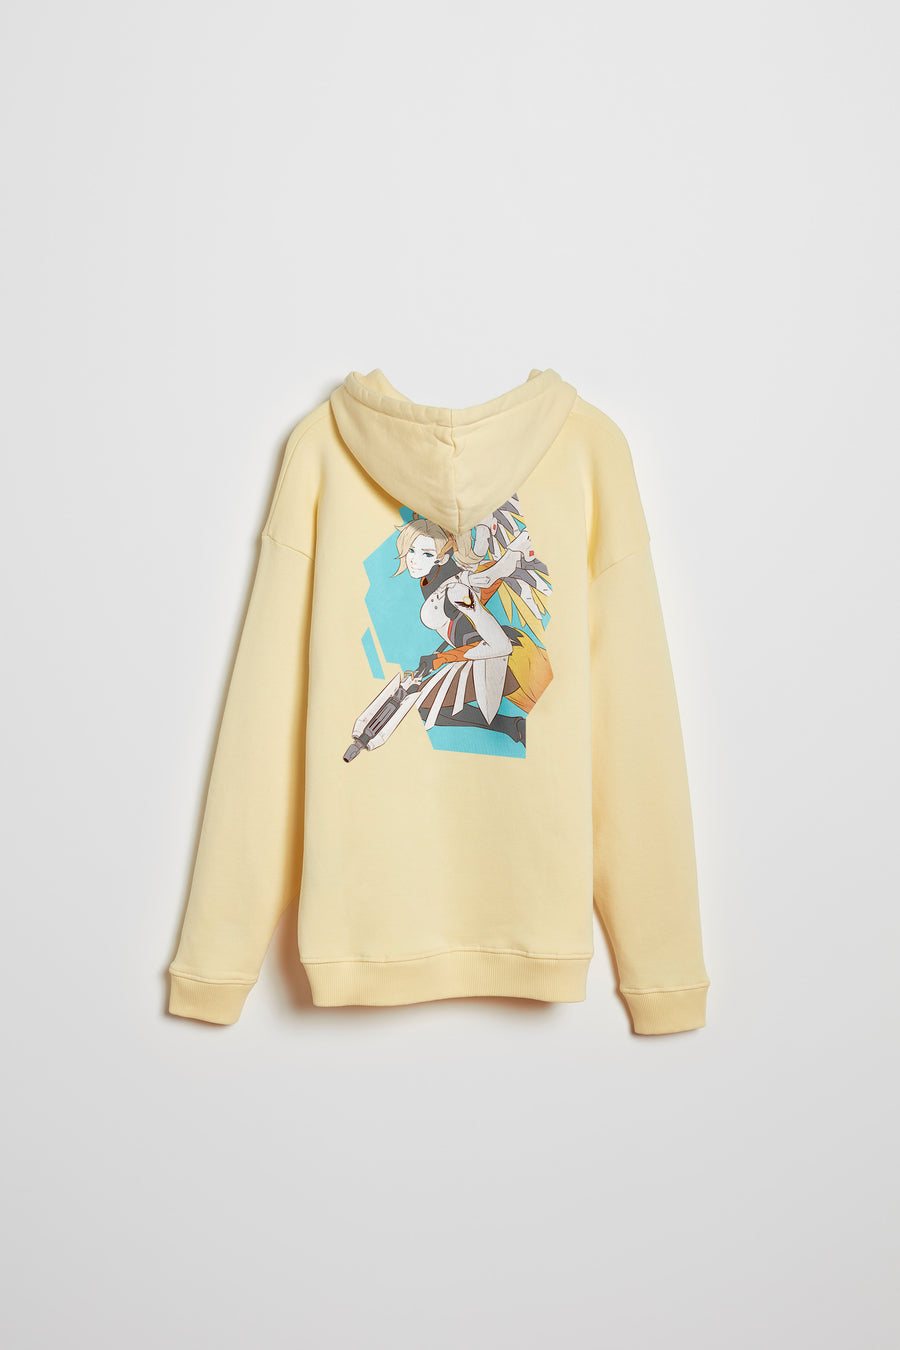 Overwatch Anime Mercy Oversize Pullover Hoodie